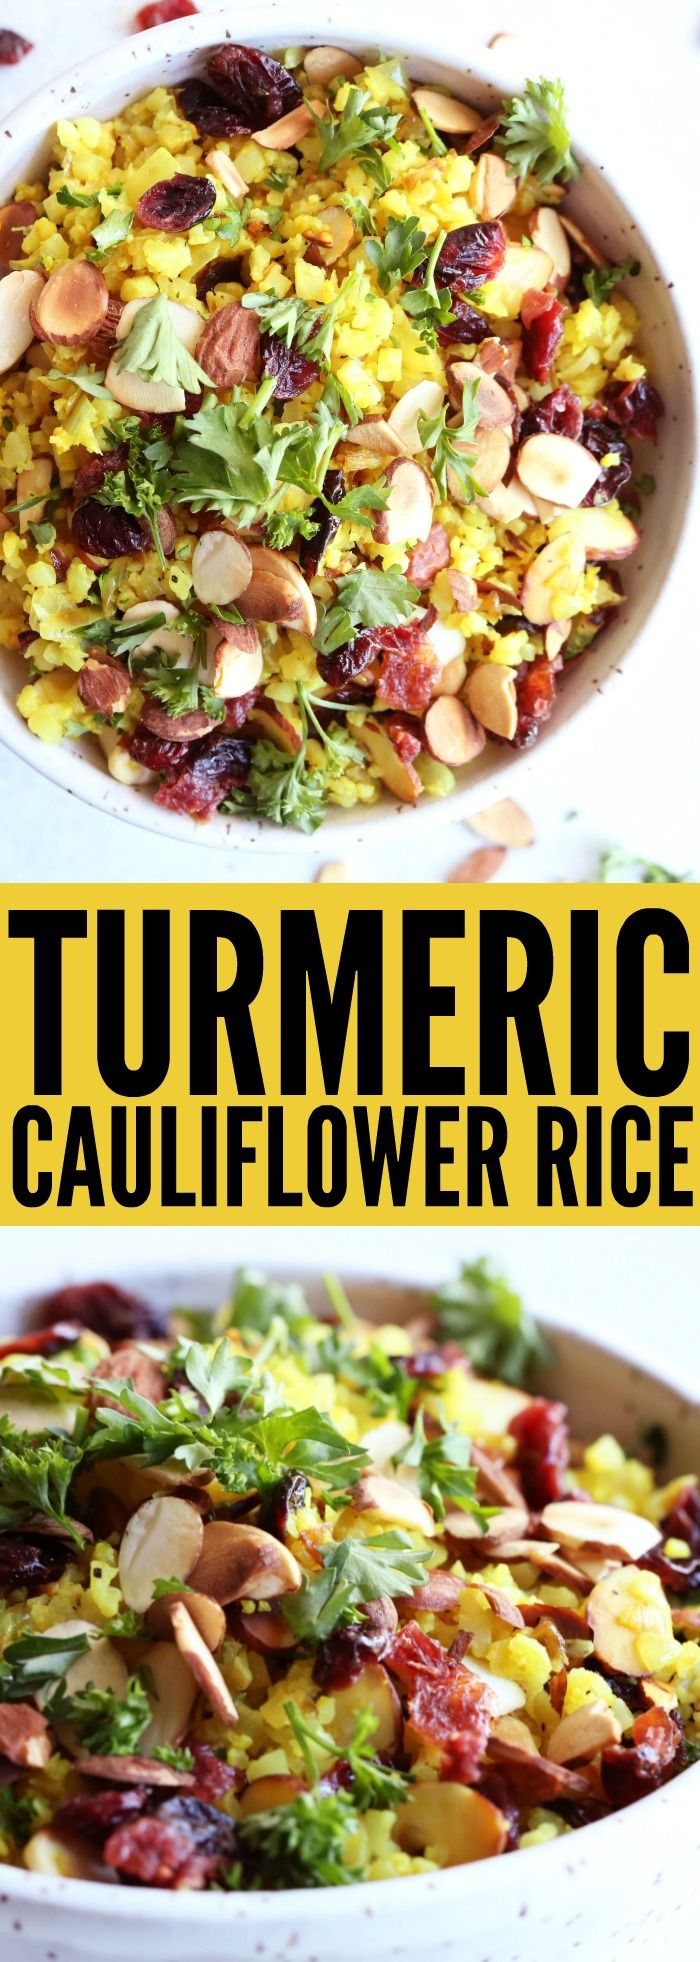 LOVE this easy to make Turmeric Cauliflower Rice!! Add some roasted salmon or grilled chicken on top and you have a colorful, flavorful, and delicious gluten free meal! | Posted By: DebbieNet.com